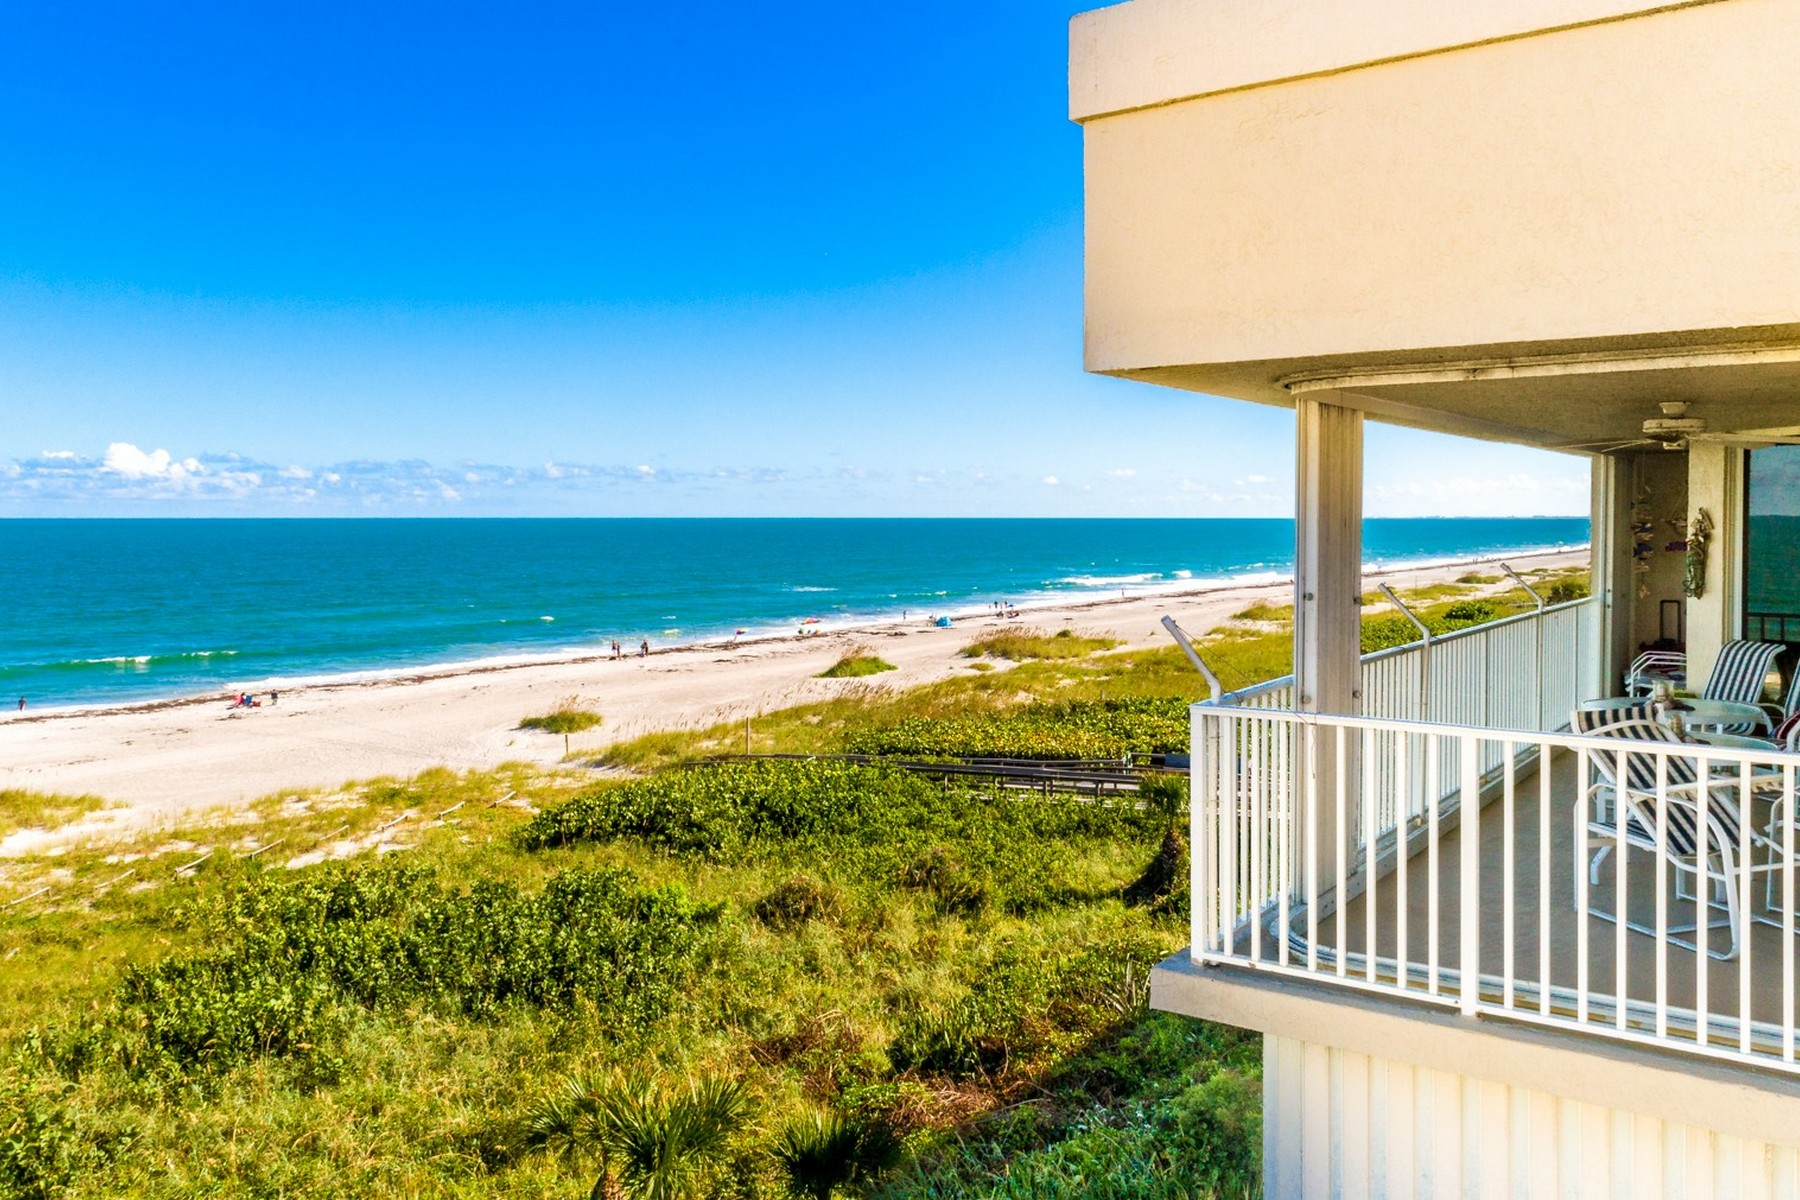 Property for Sale at Oceanfront Penthouse in Sand Dunes 425 Buchanan Avenue #502 Cape Canaveral, Florida 32920 United States